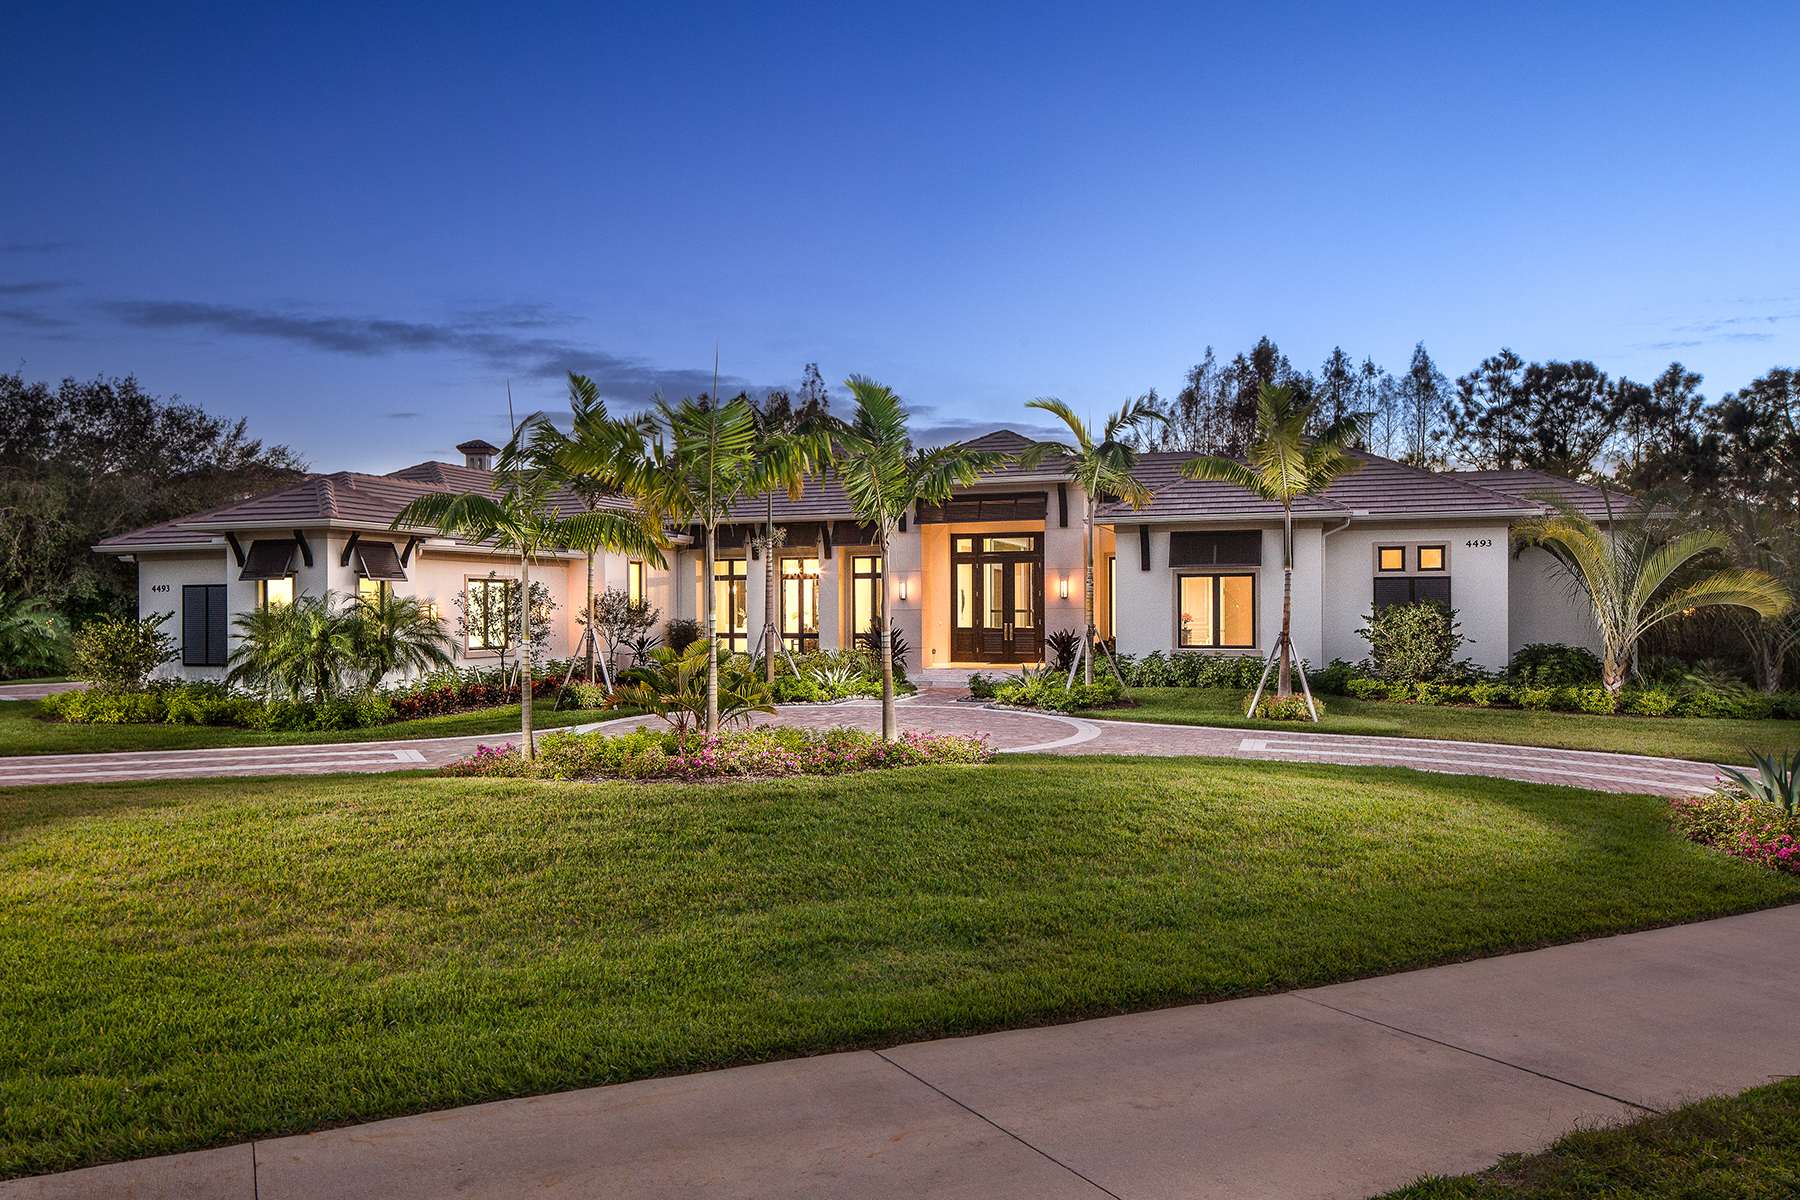 Single Family Home for Sale at QUAIL WEST 4493 Wayside Dr Naples, Florida, 34119 United States